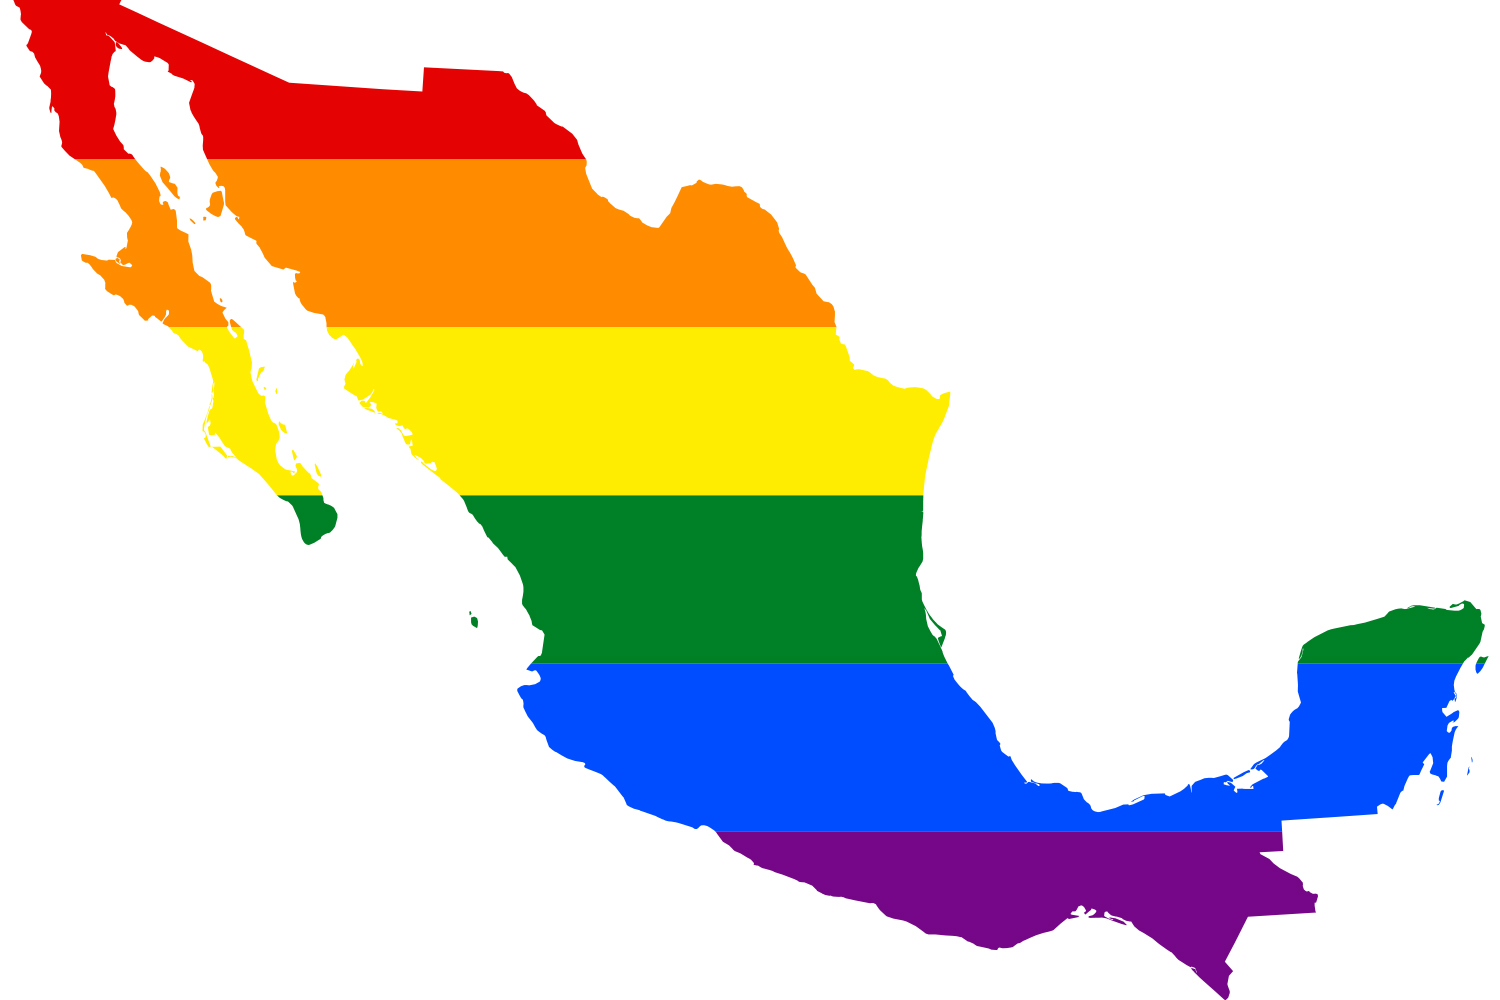 Over 100 employers in Mexico recognized for LGBT+ inclusion